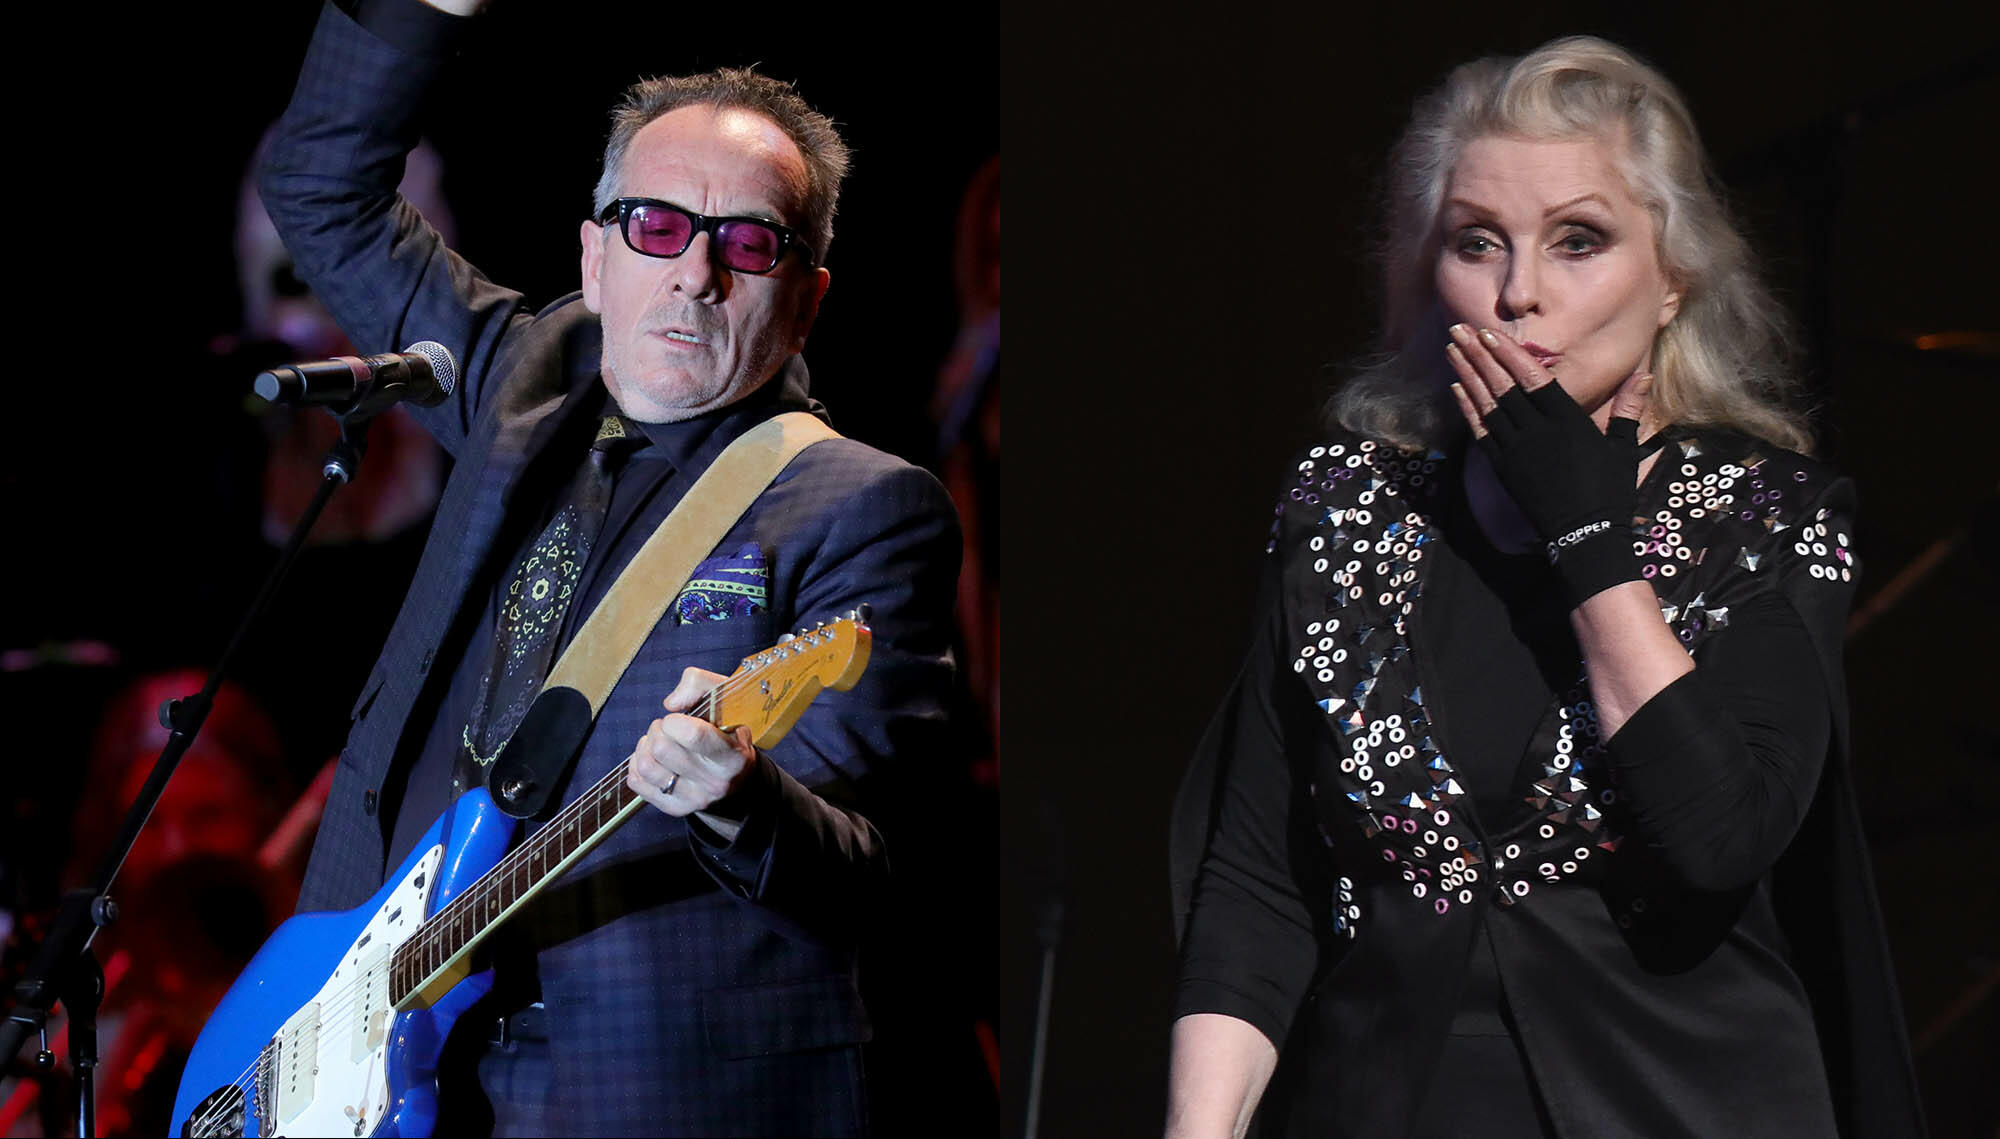 Elvis Costello & The Imposters, Blondie Announce Co-Headlining Tour